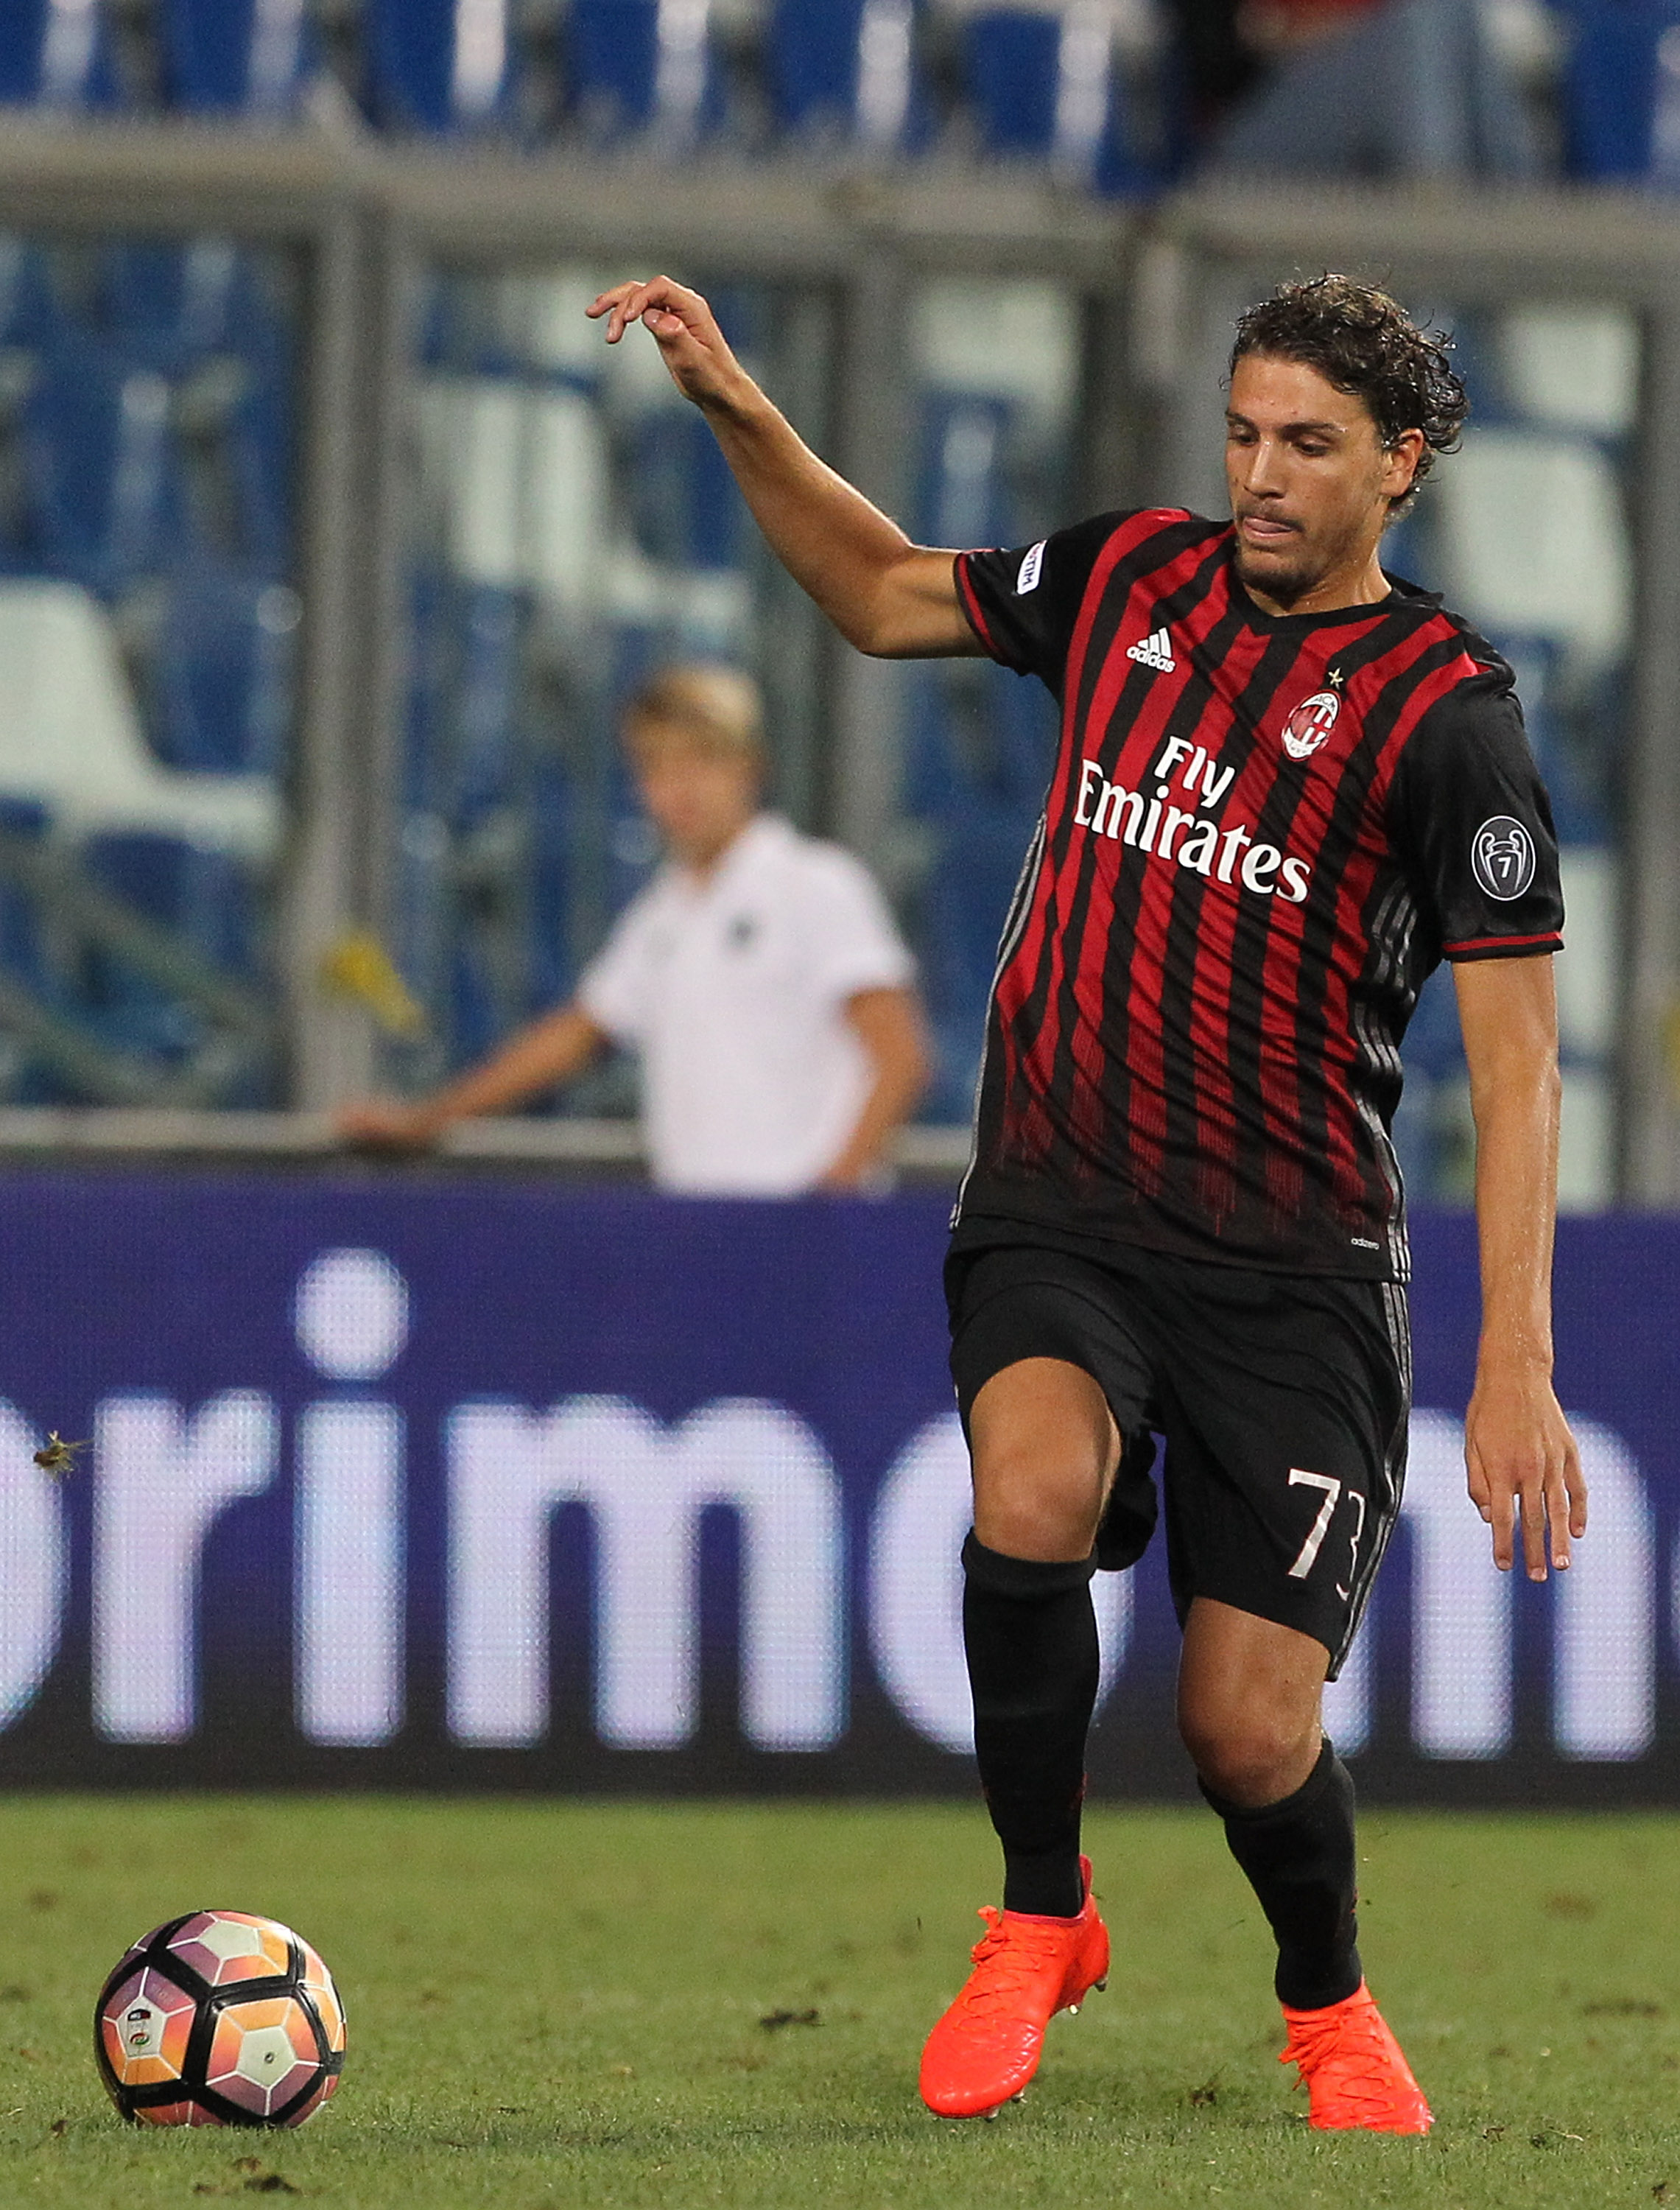 18 year old Manuel Locatelli made his debut at the end of last season